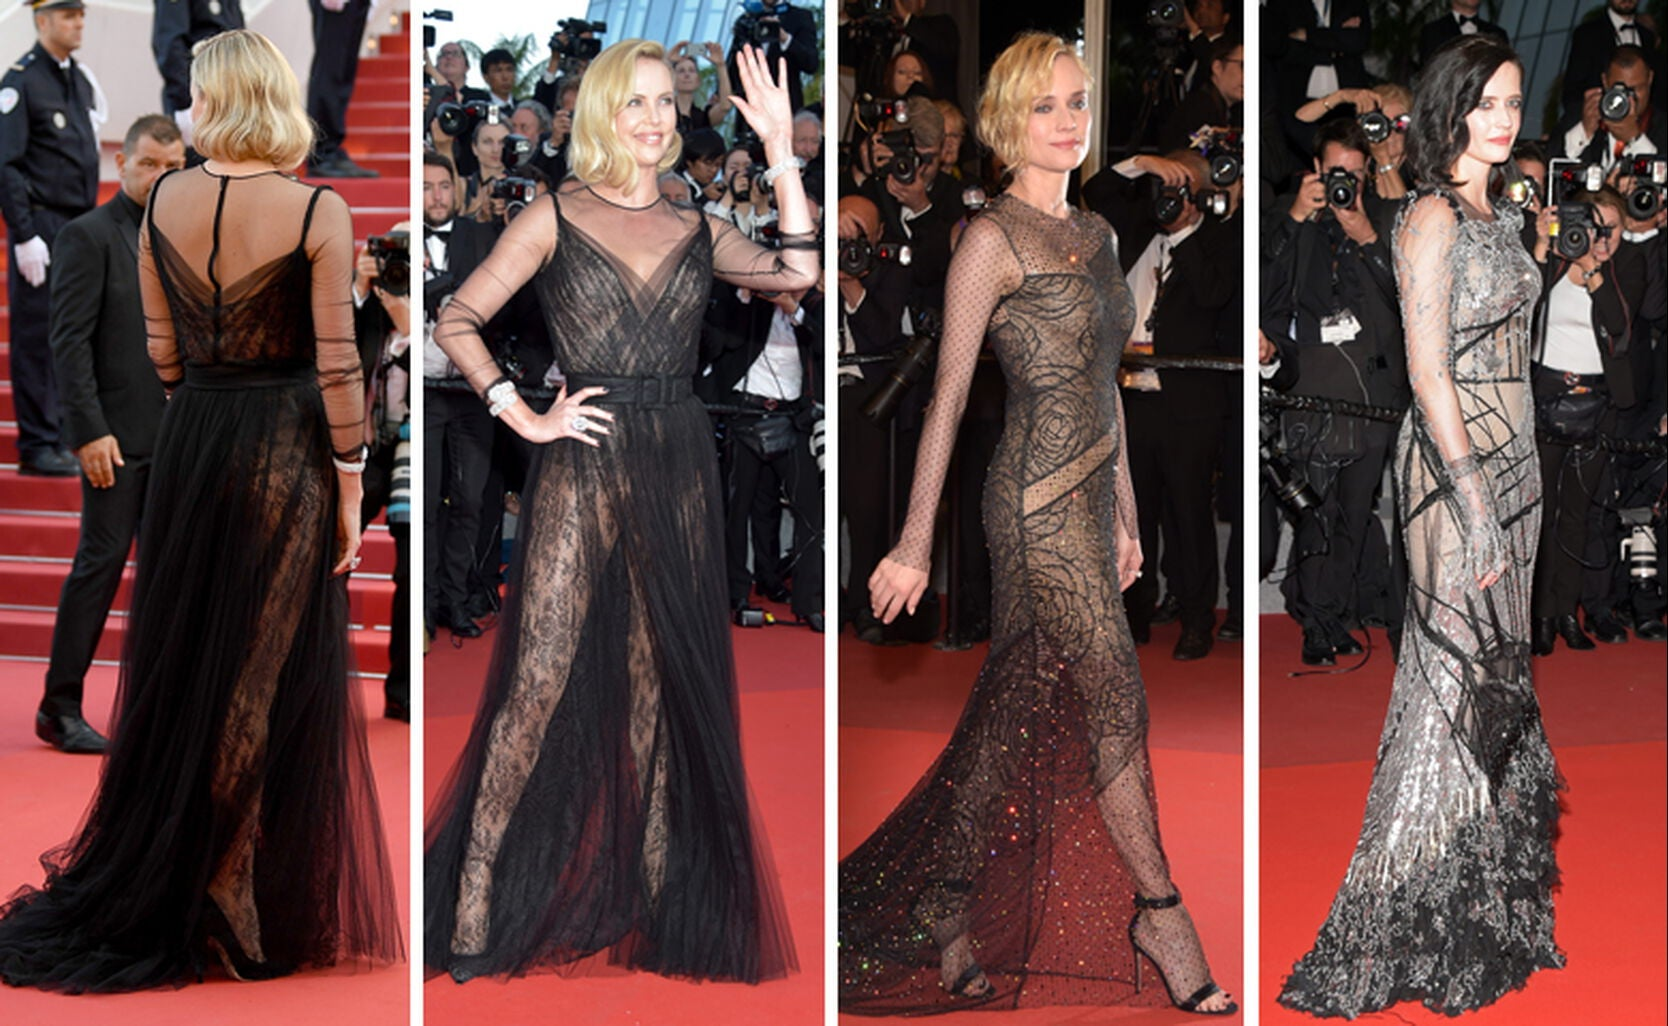 Charlize Theron, Diane Kruger and Eva Green